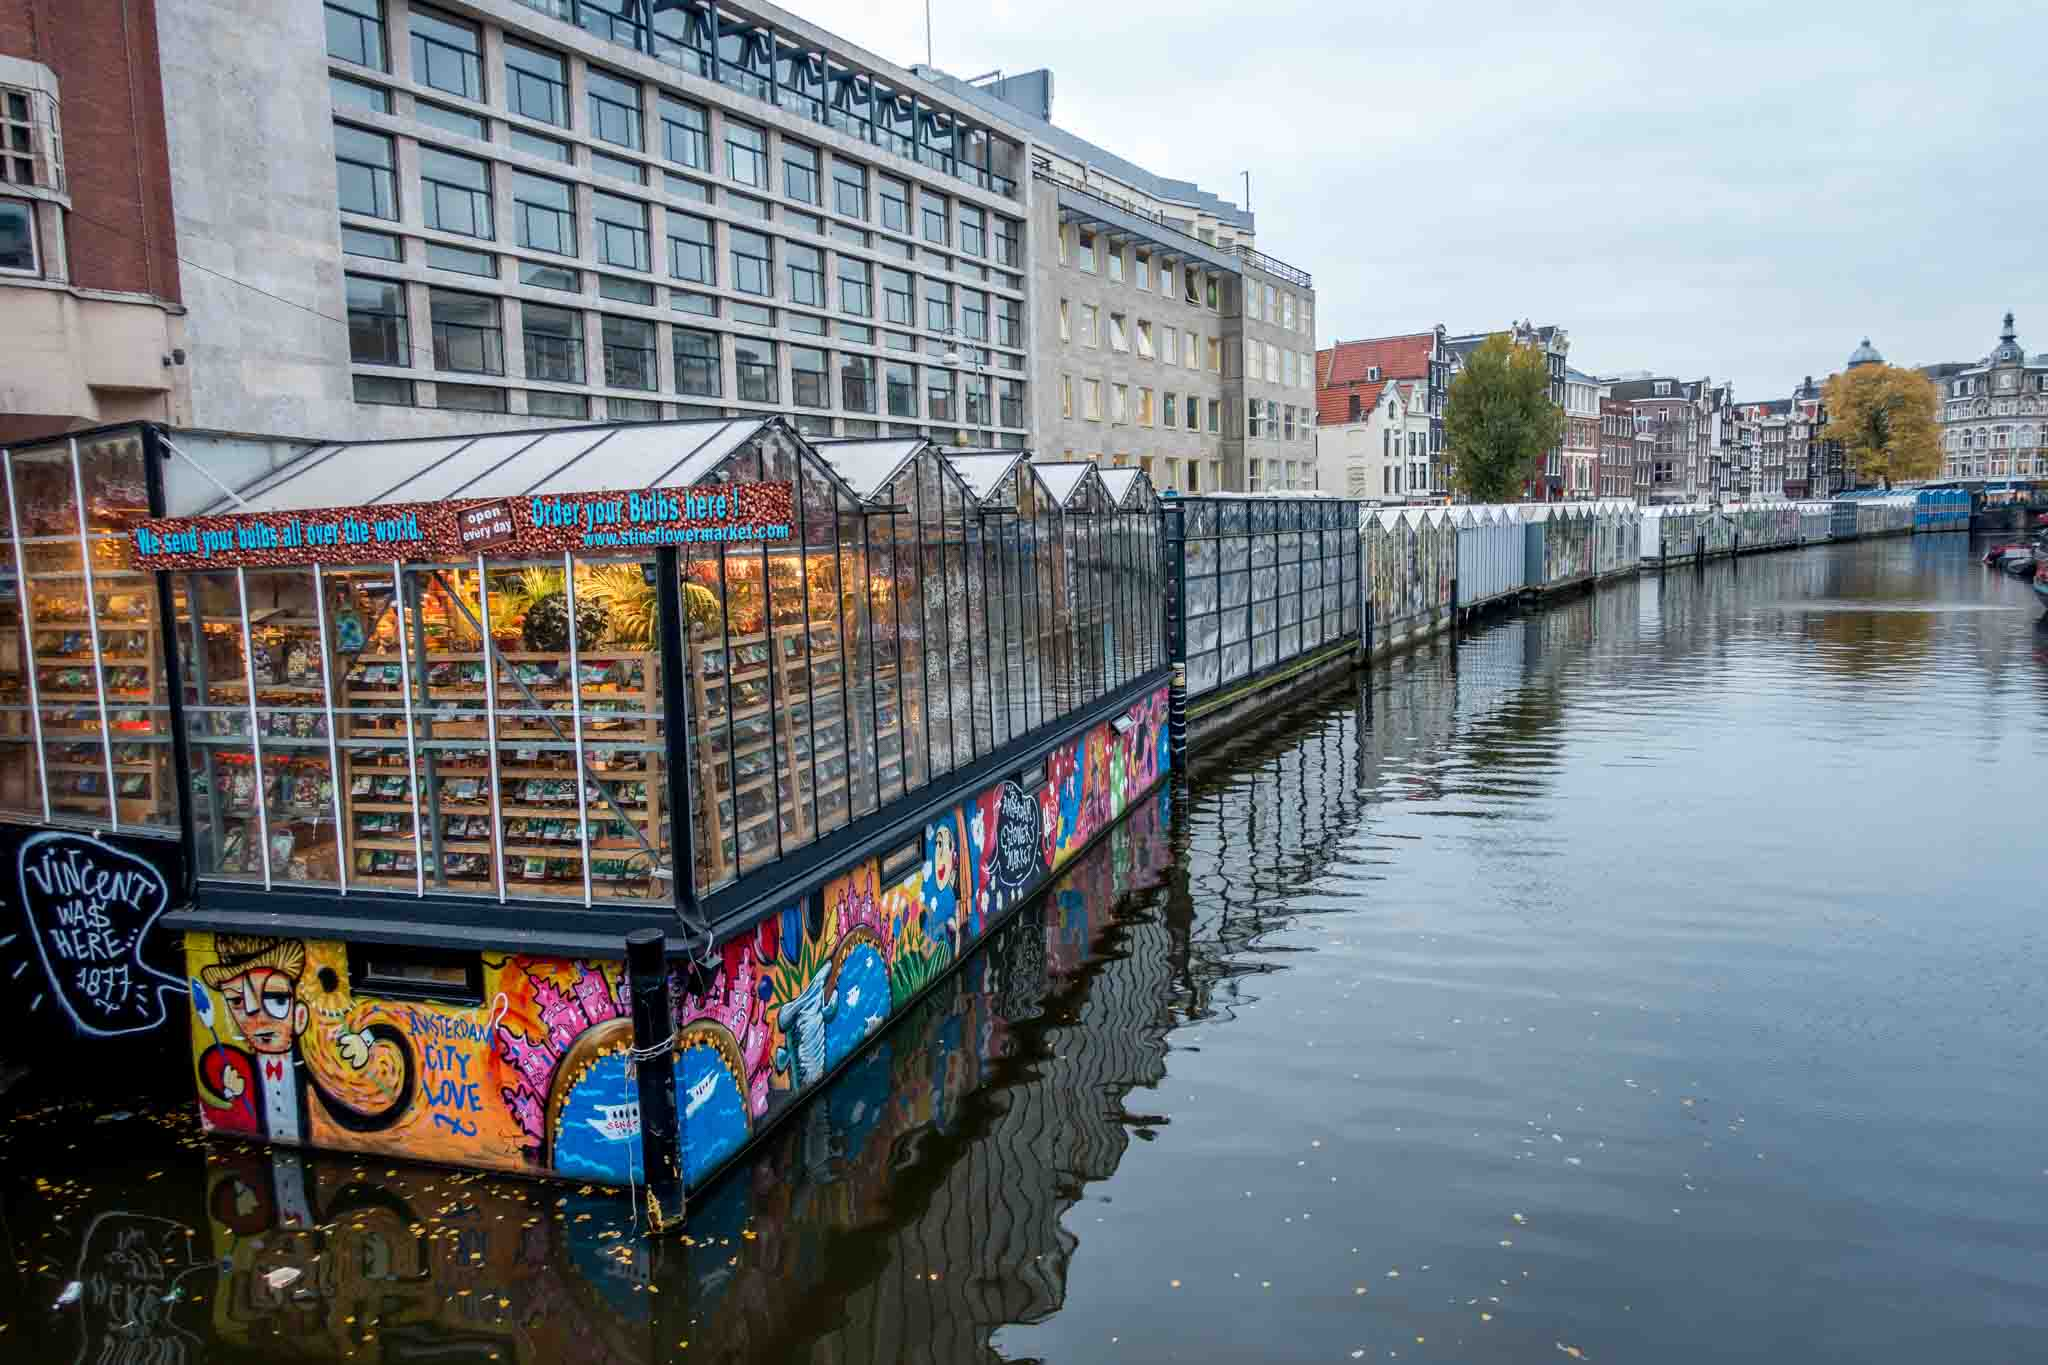 Bloemenmarkt, the floating flower market in the Singel canal, is one of the cool places in Amsterdam for flower lovers